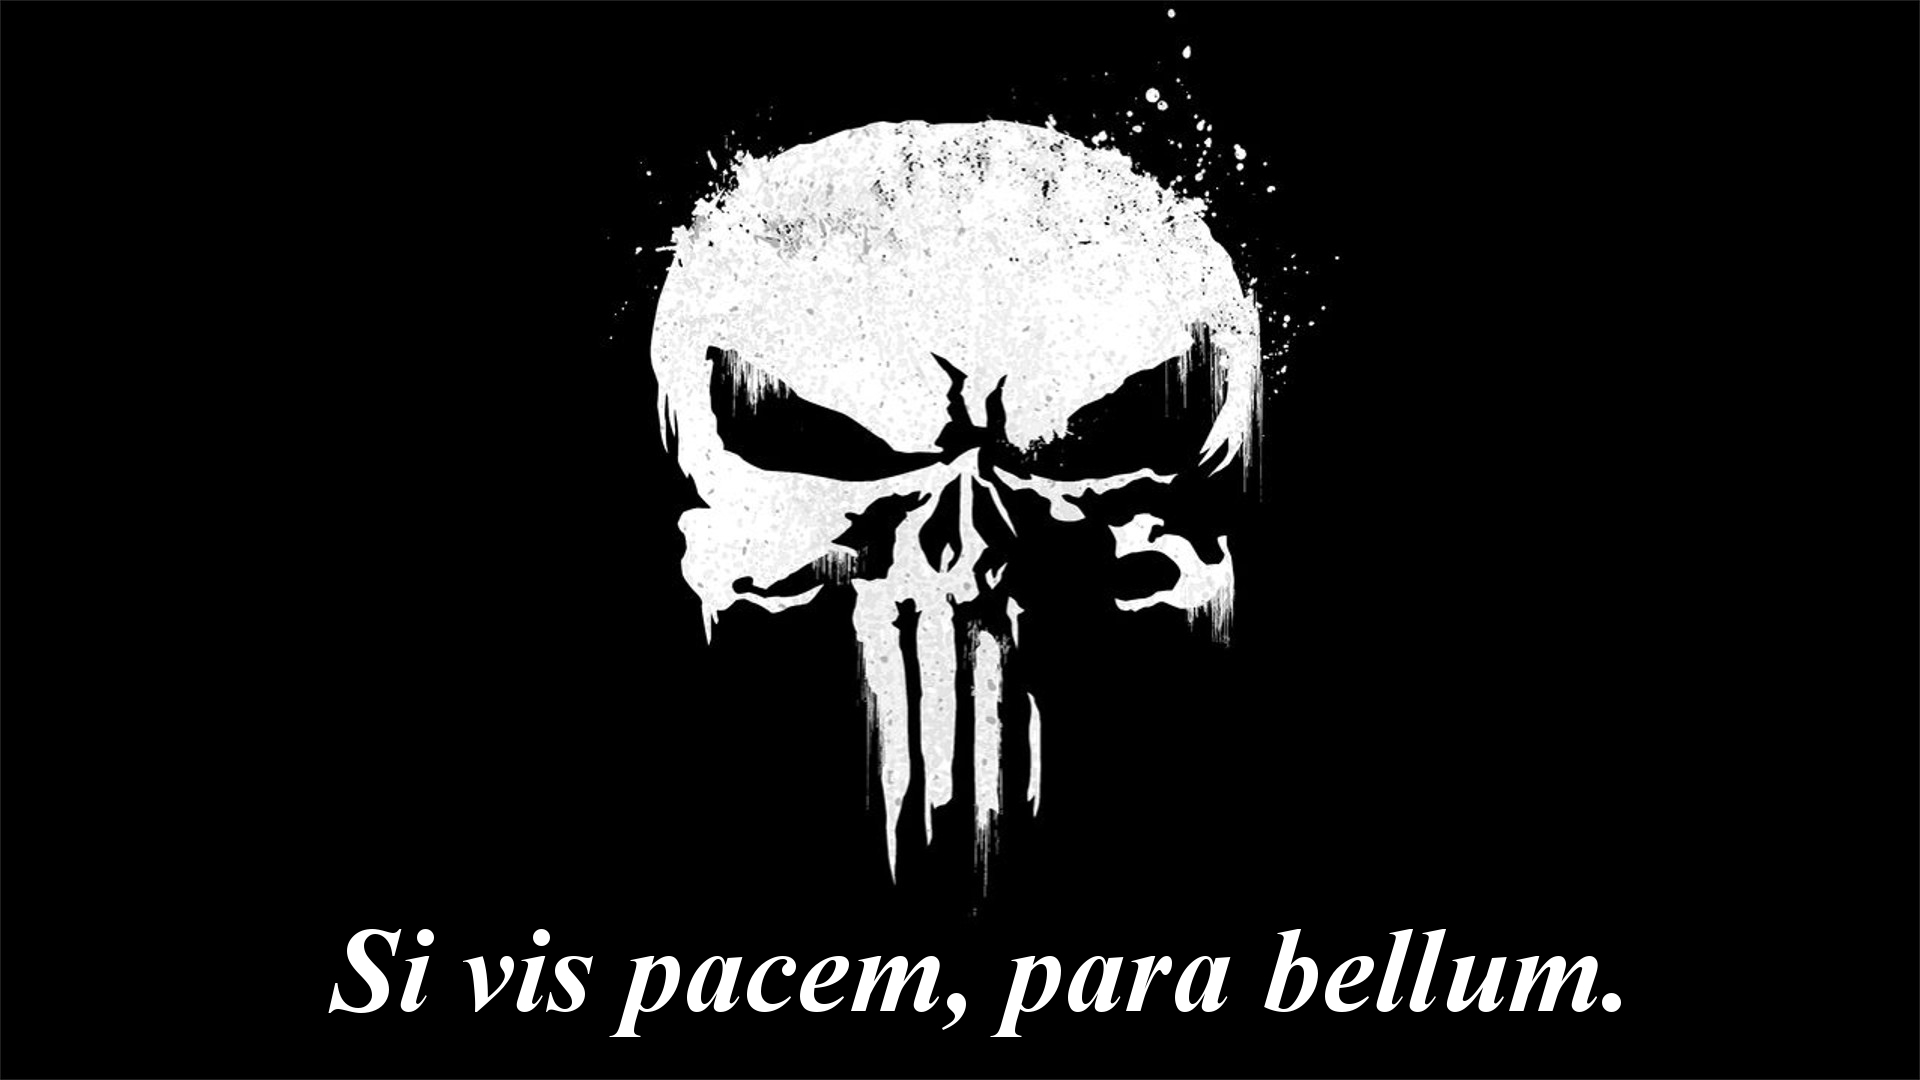 """Si vis pacem, para bellum"" – If you want peace, prepare for war.- Punisher [1920 x 1800 ]"